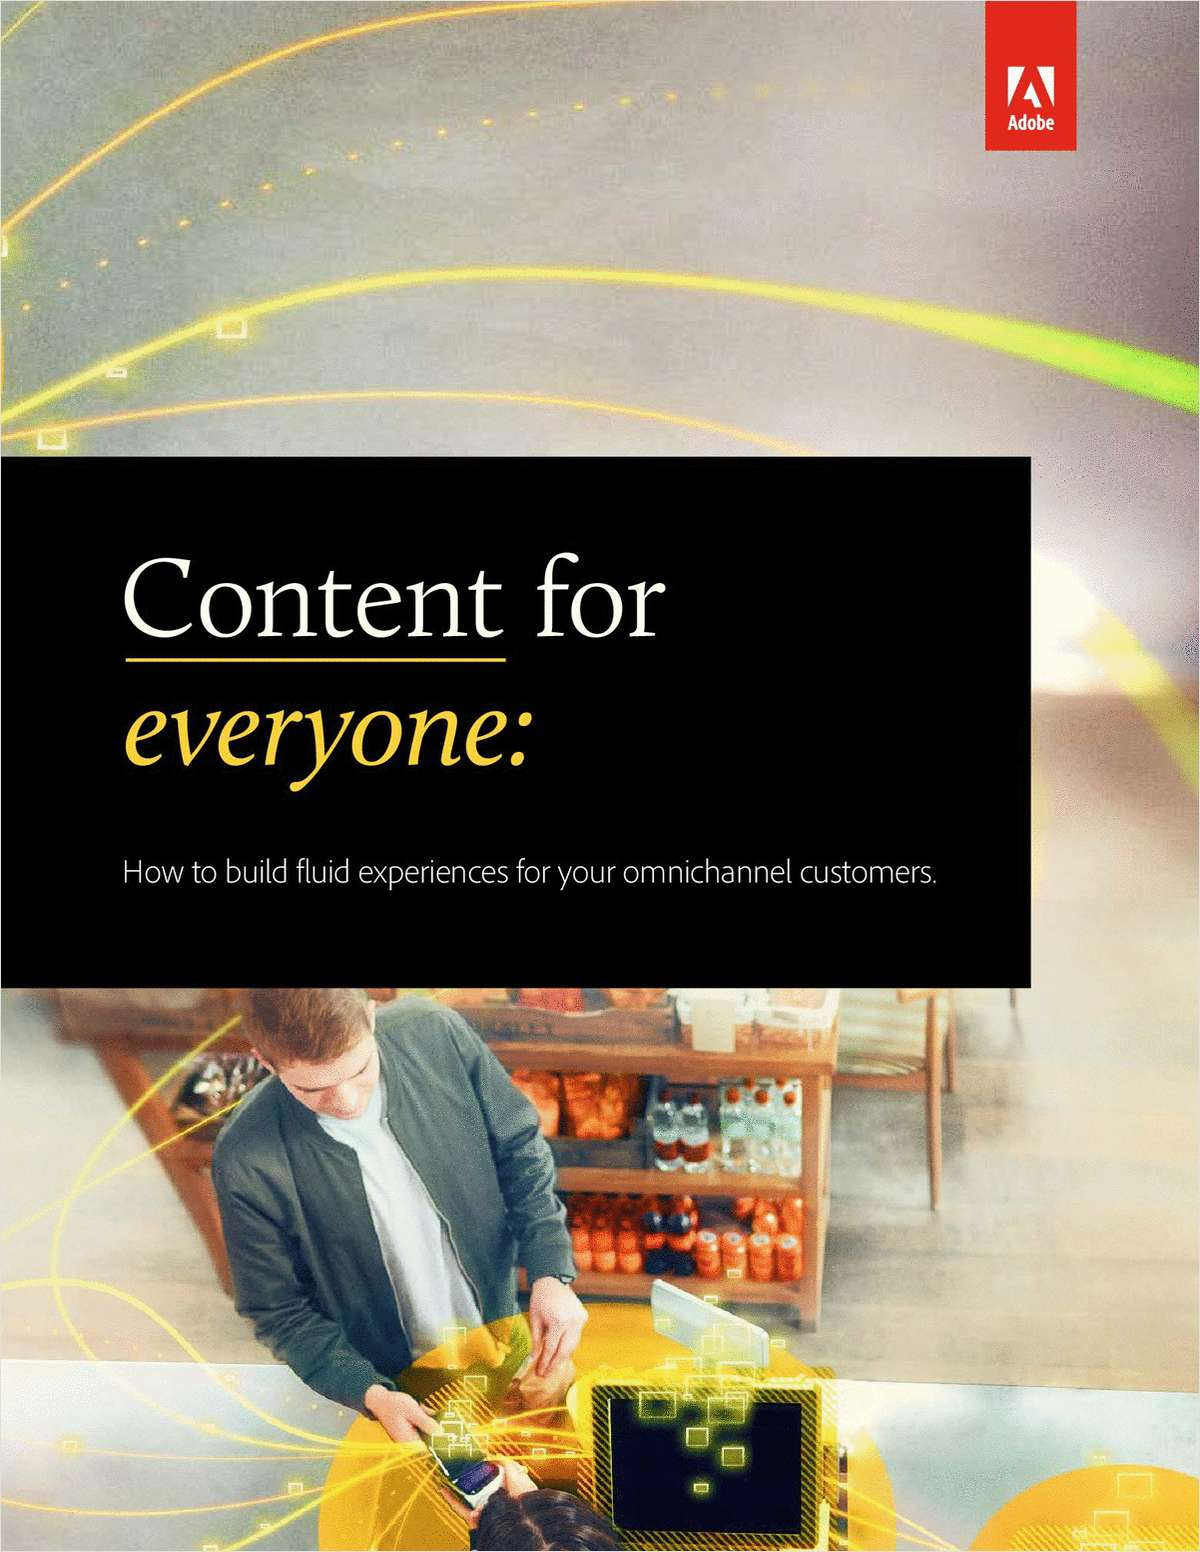 Content for Everyone: How to Build Fluid Experiences for Your Omnichannel Customers